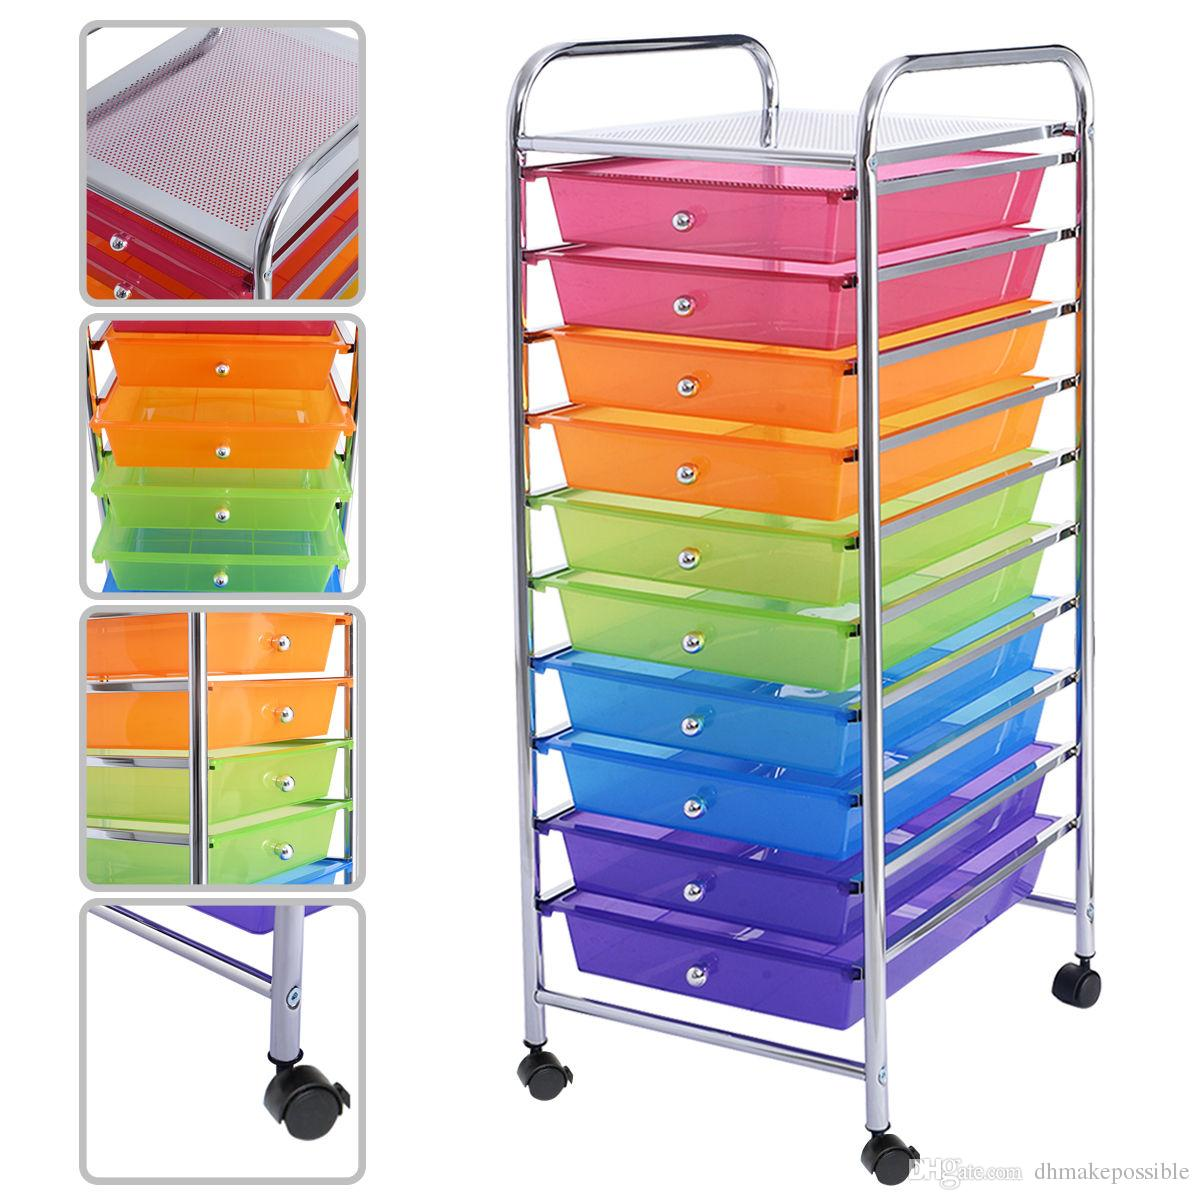 Delightful 2019 10 Drawer Rolling Storage Cart For Scrapbook Paper In Office School  Organizer From Dhmakepossible, $29.01 | DHgate.Com